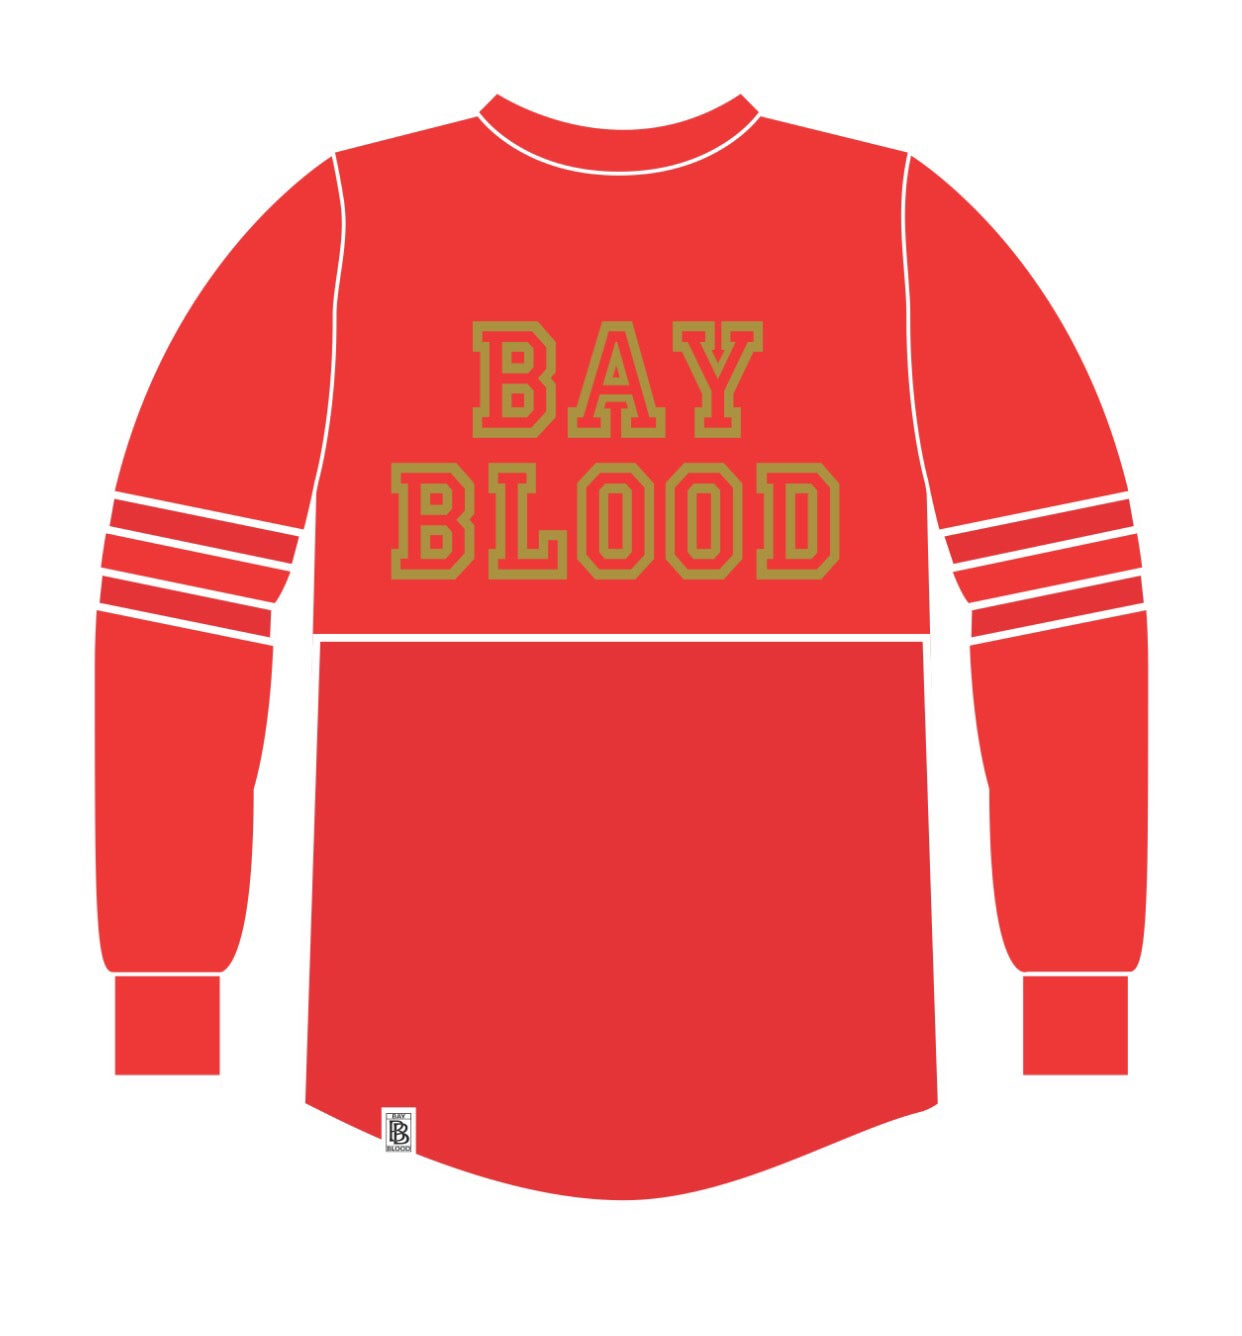 Women S College Shirt Red Gold Bay Blood Clothing